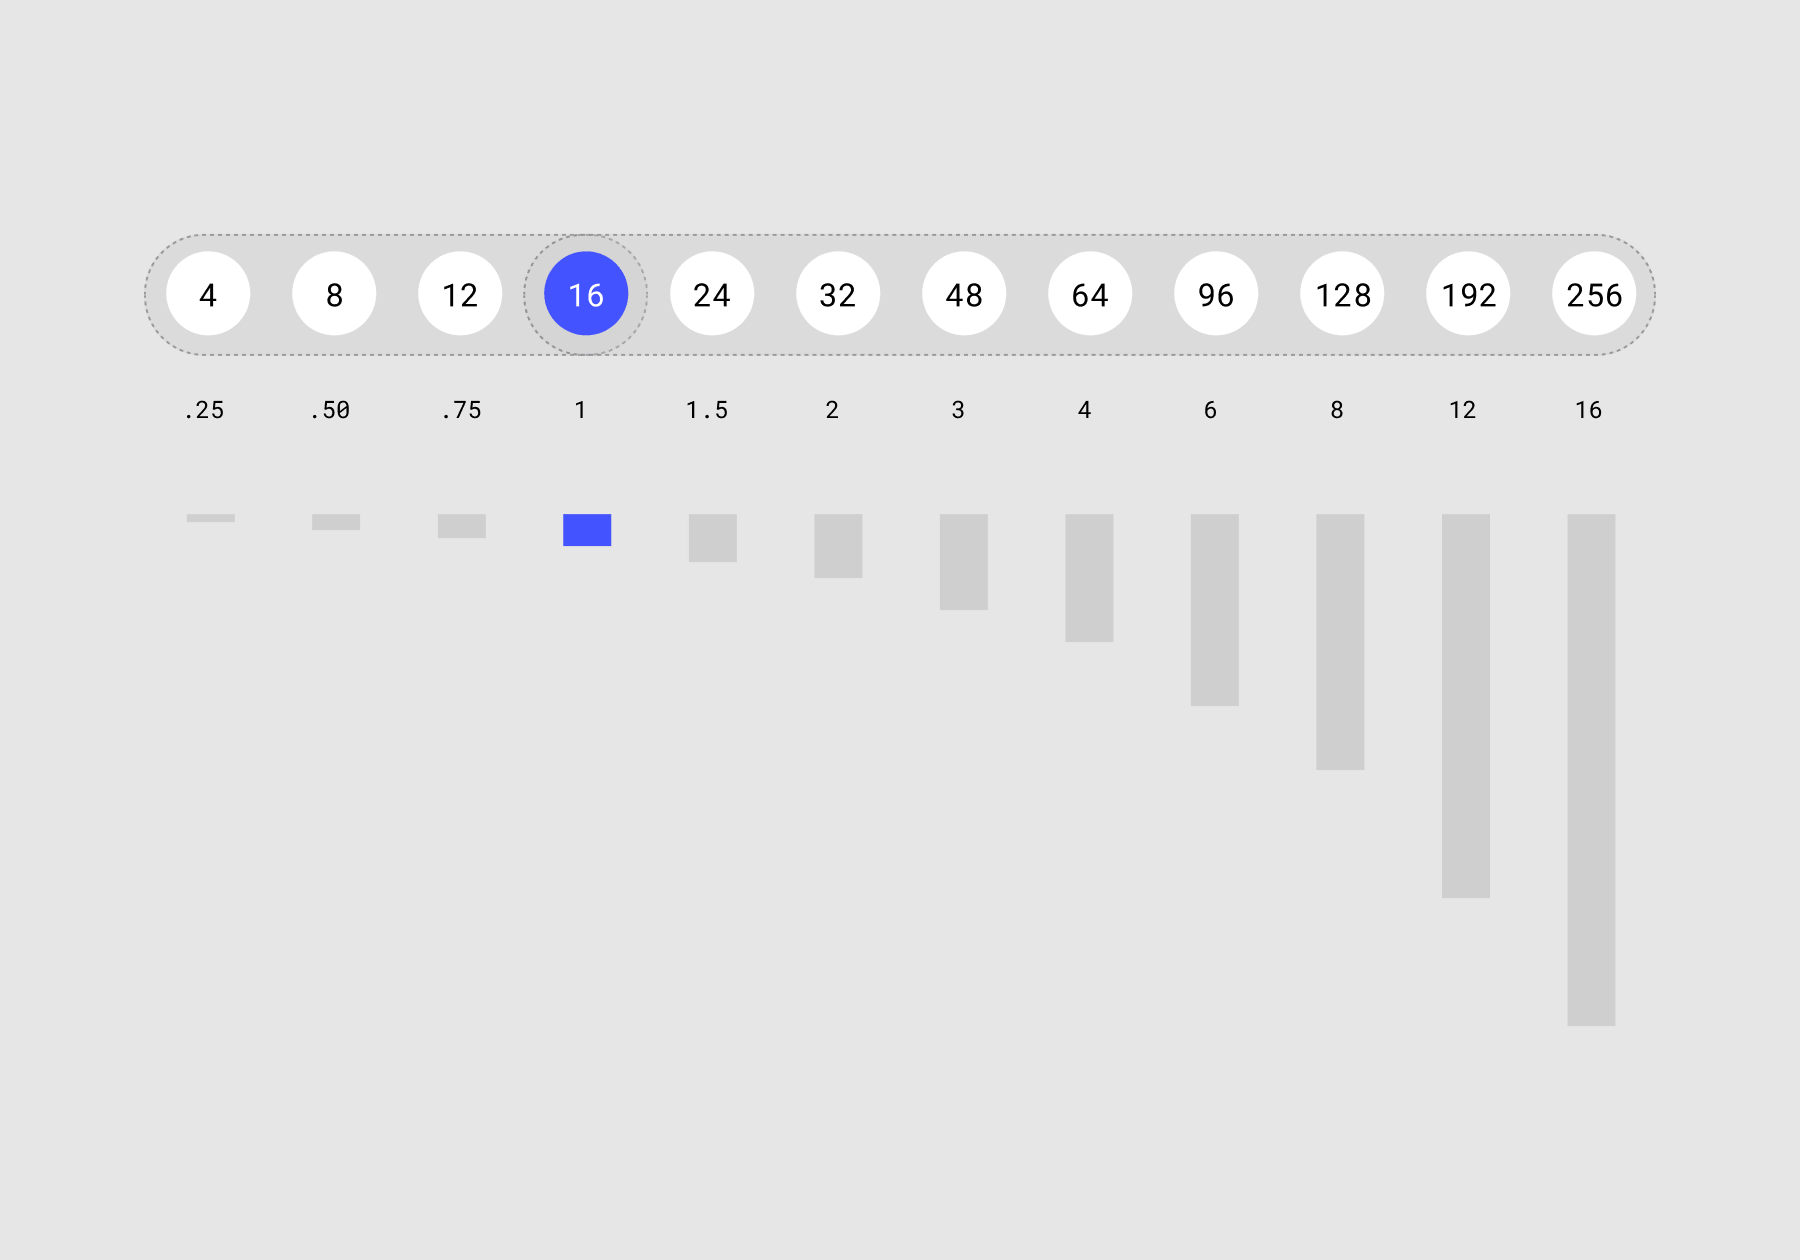 Visual weights of the scale